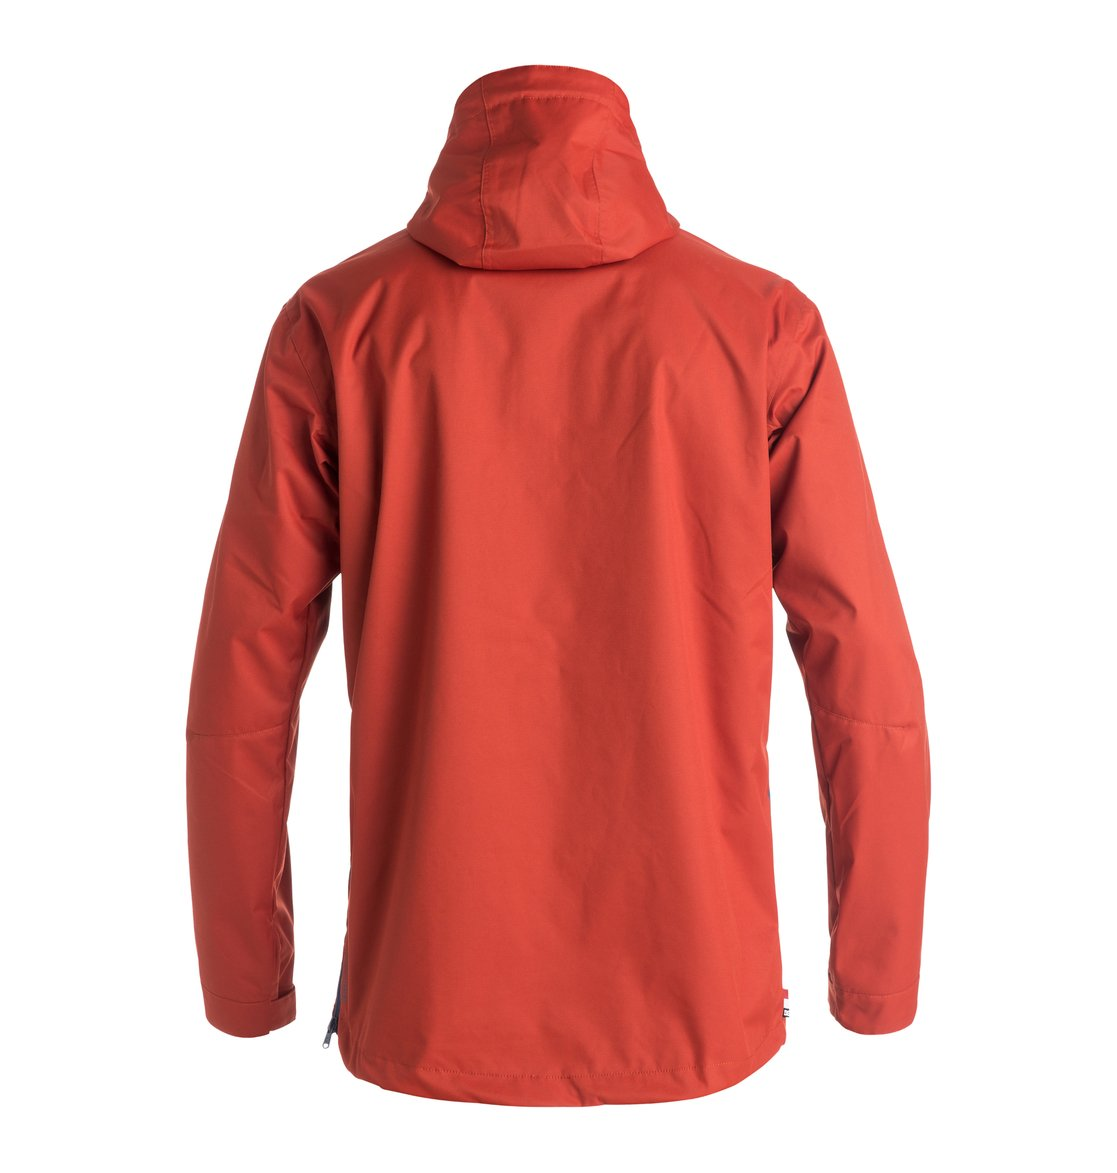 Anorak Dc Shoes